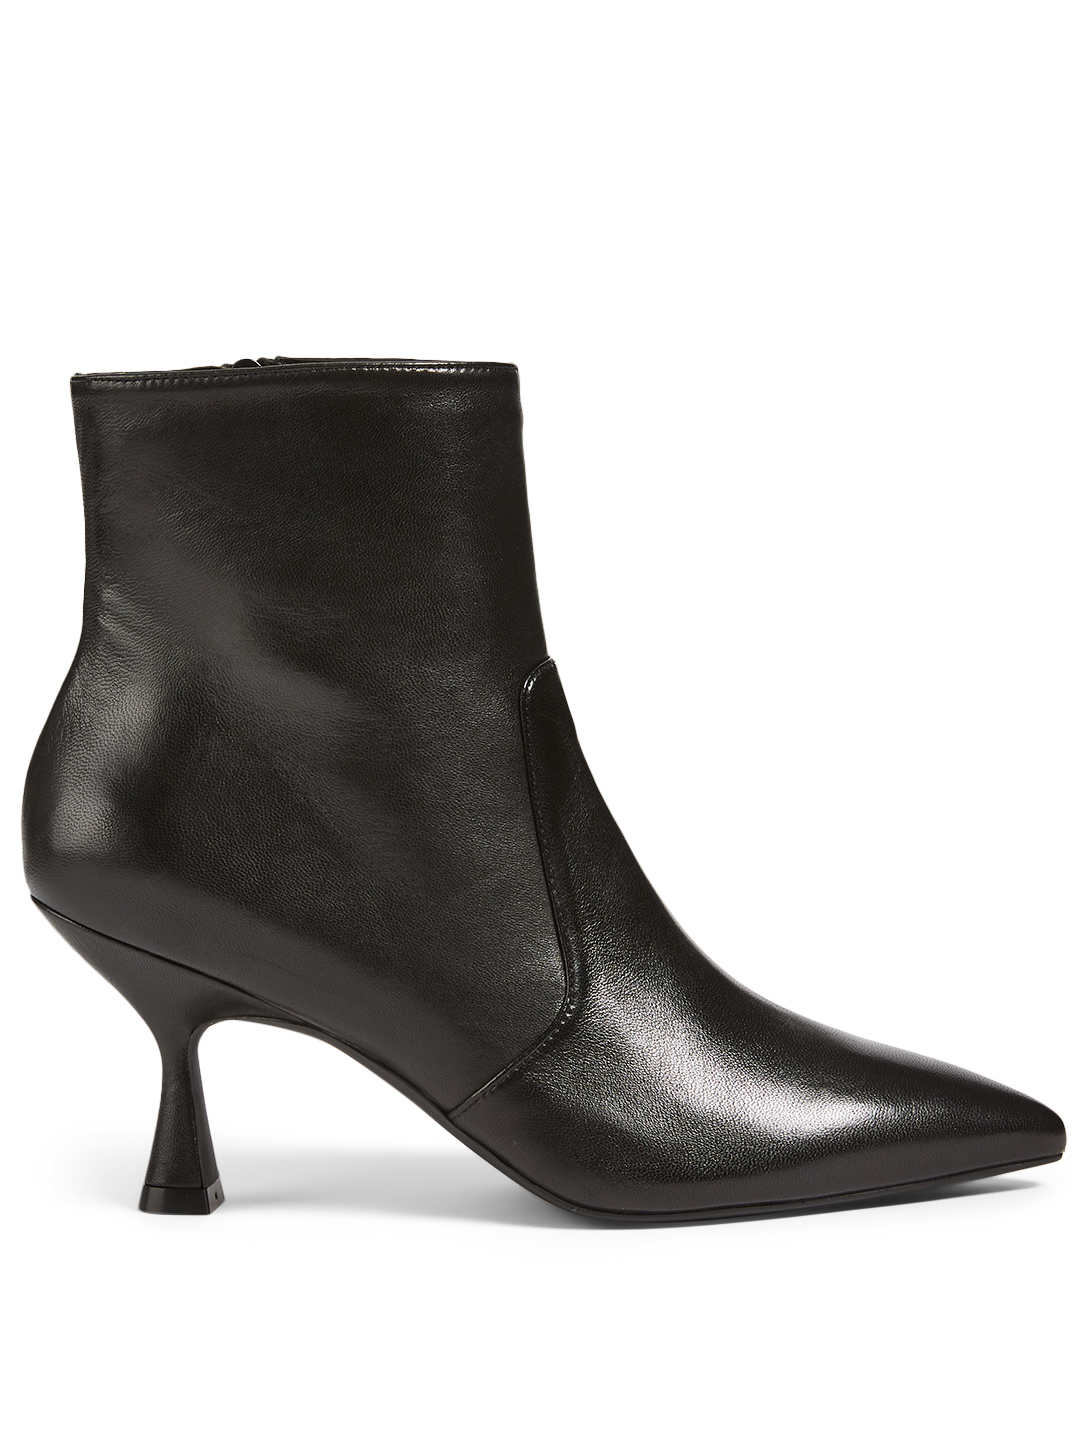 STUART WEITZMAN Melena 75 Leather Heeled Ankle Boots Women's Black